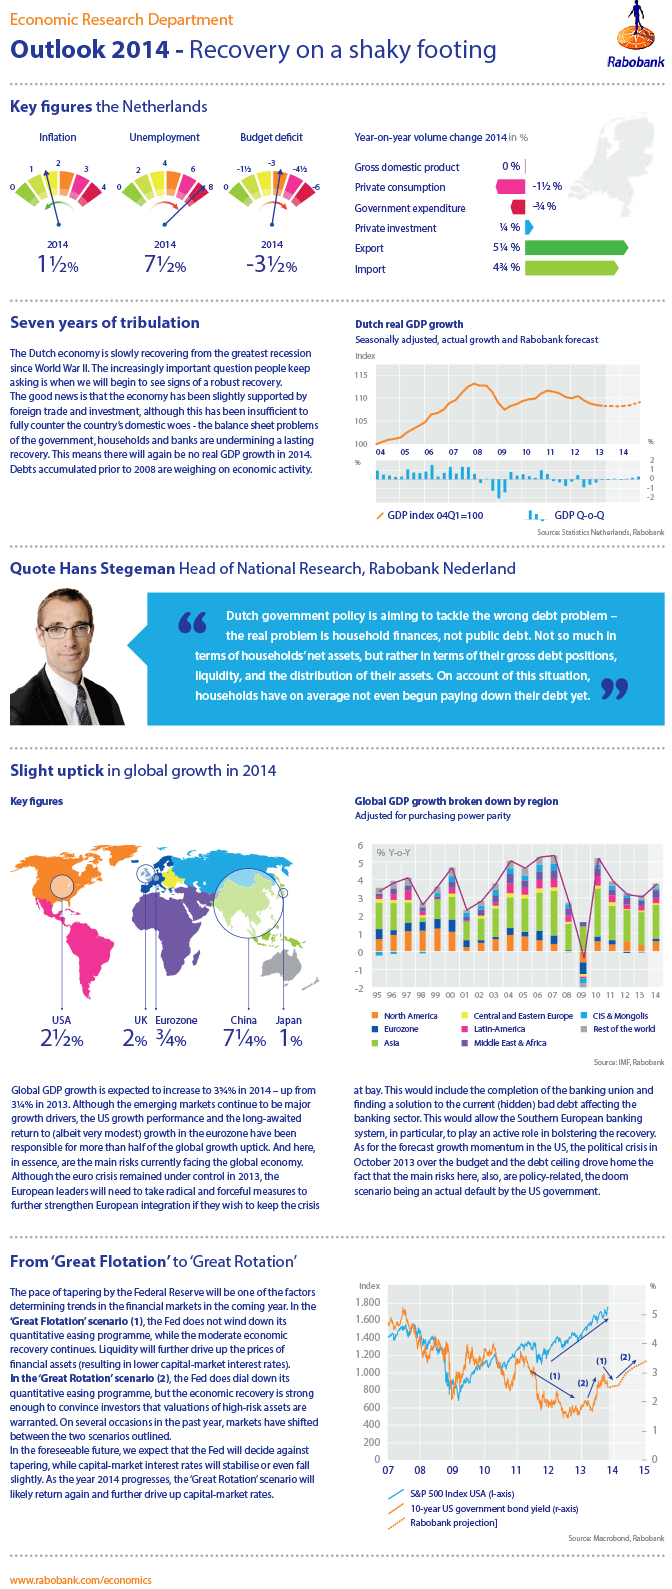 Infographic - Outlook 2014